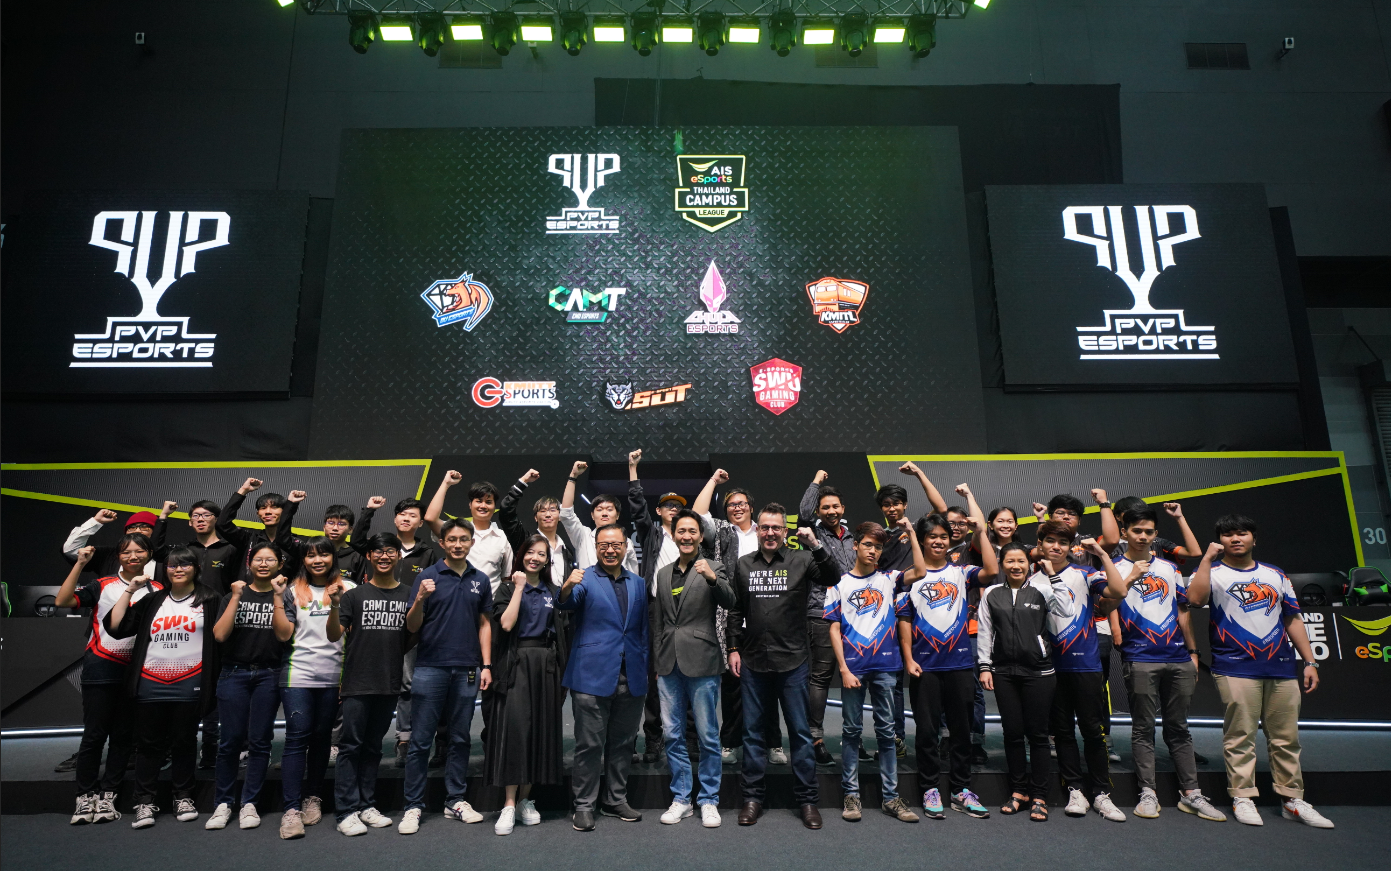 Singtel and AIS representatives at PVP esports community leagues 2020 launch (student gamers photo op)